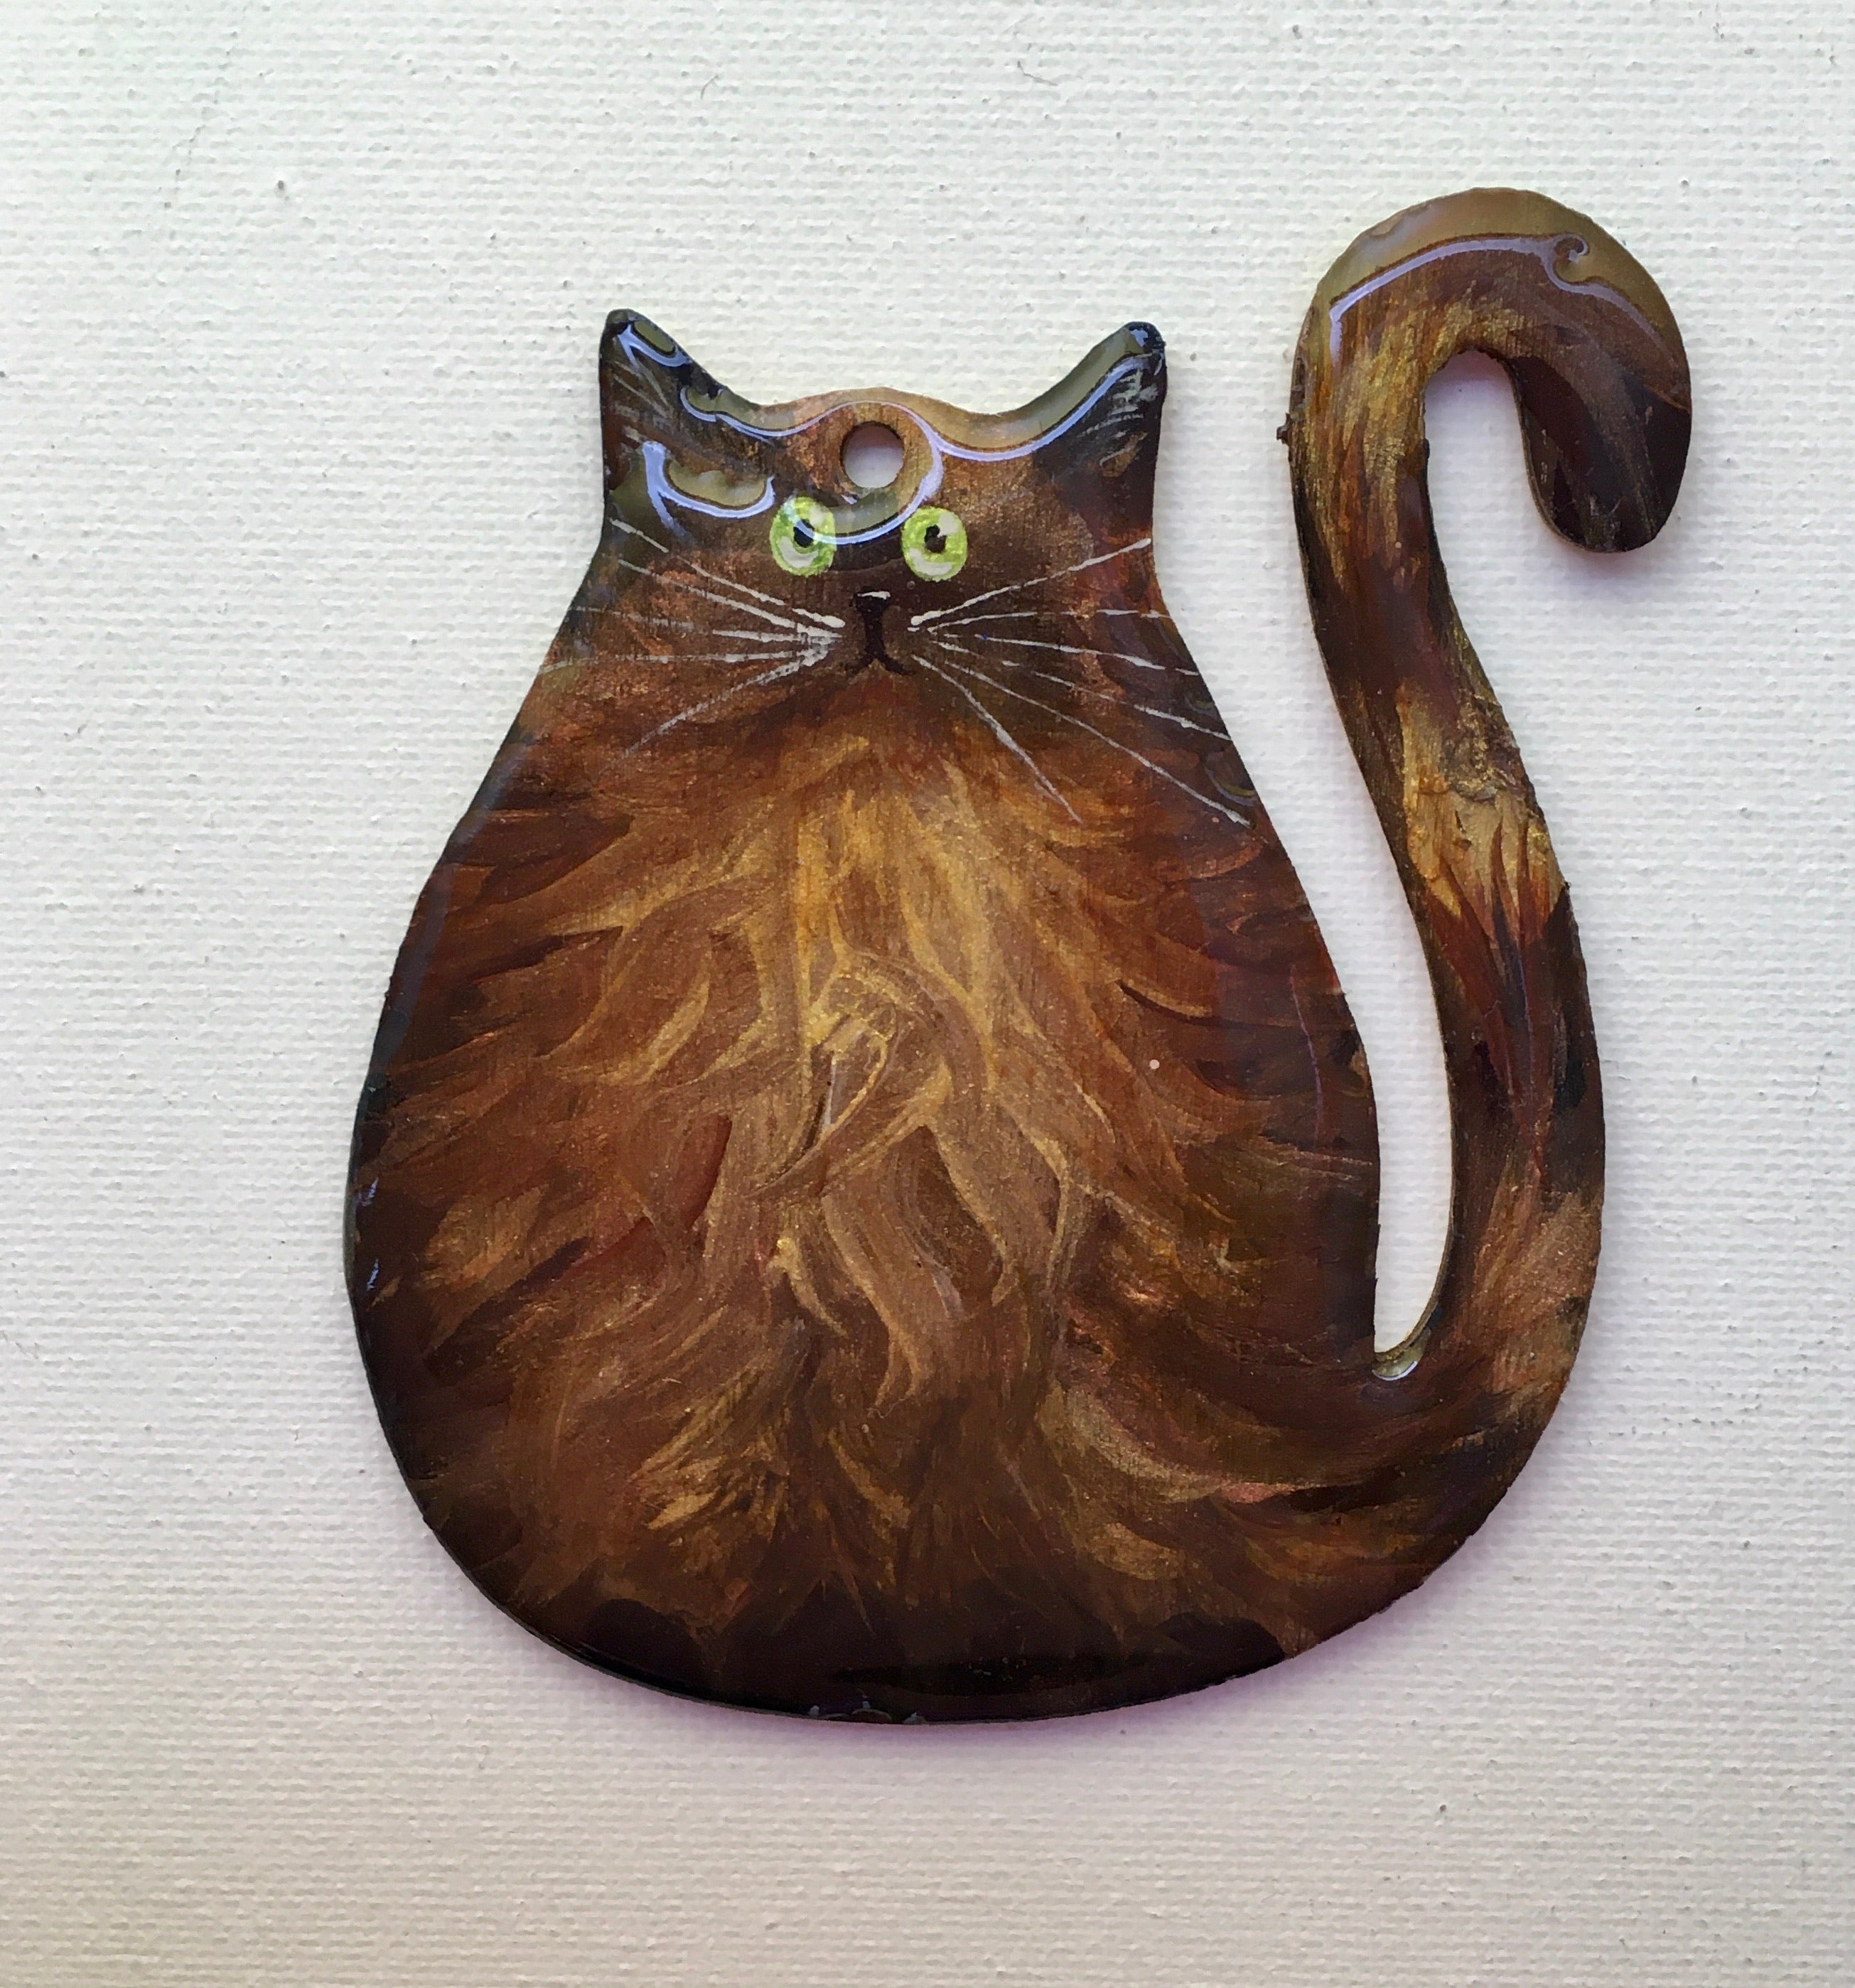 Copper cat - imperfect ornament